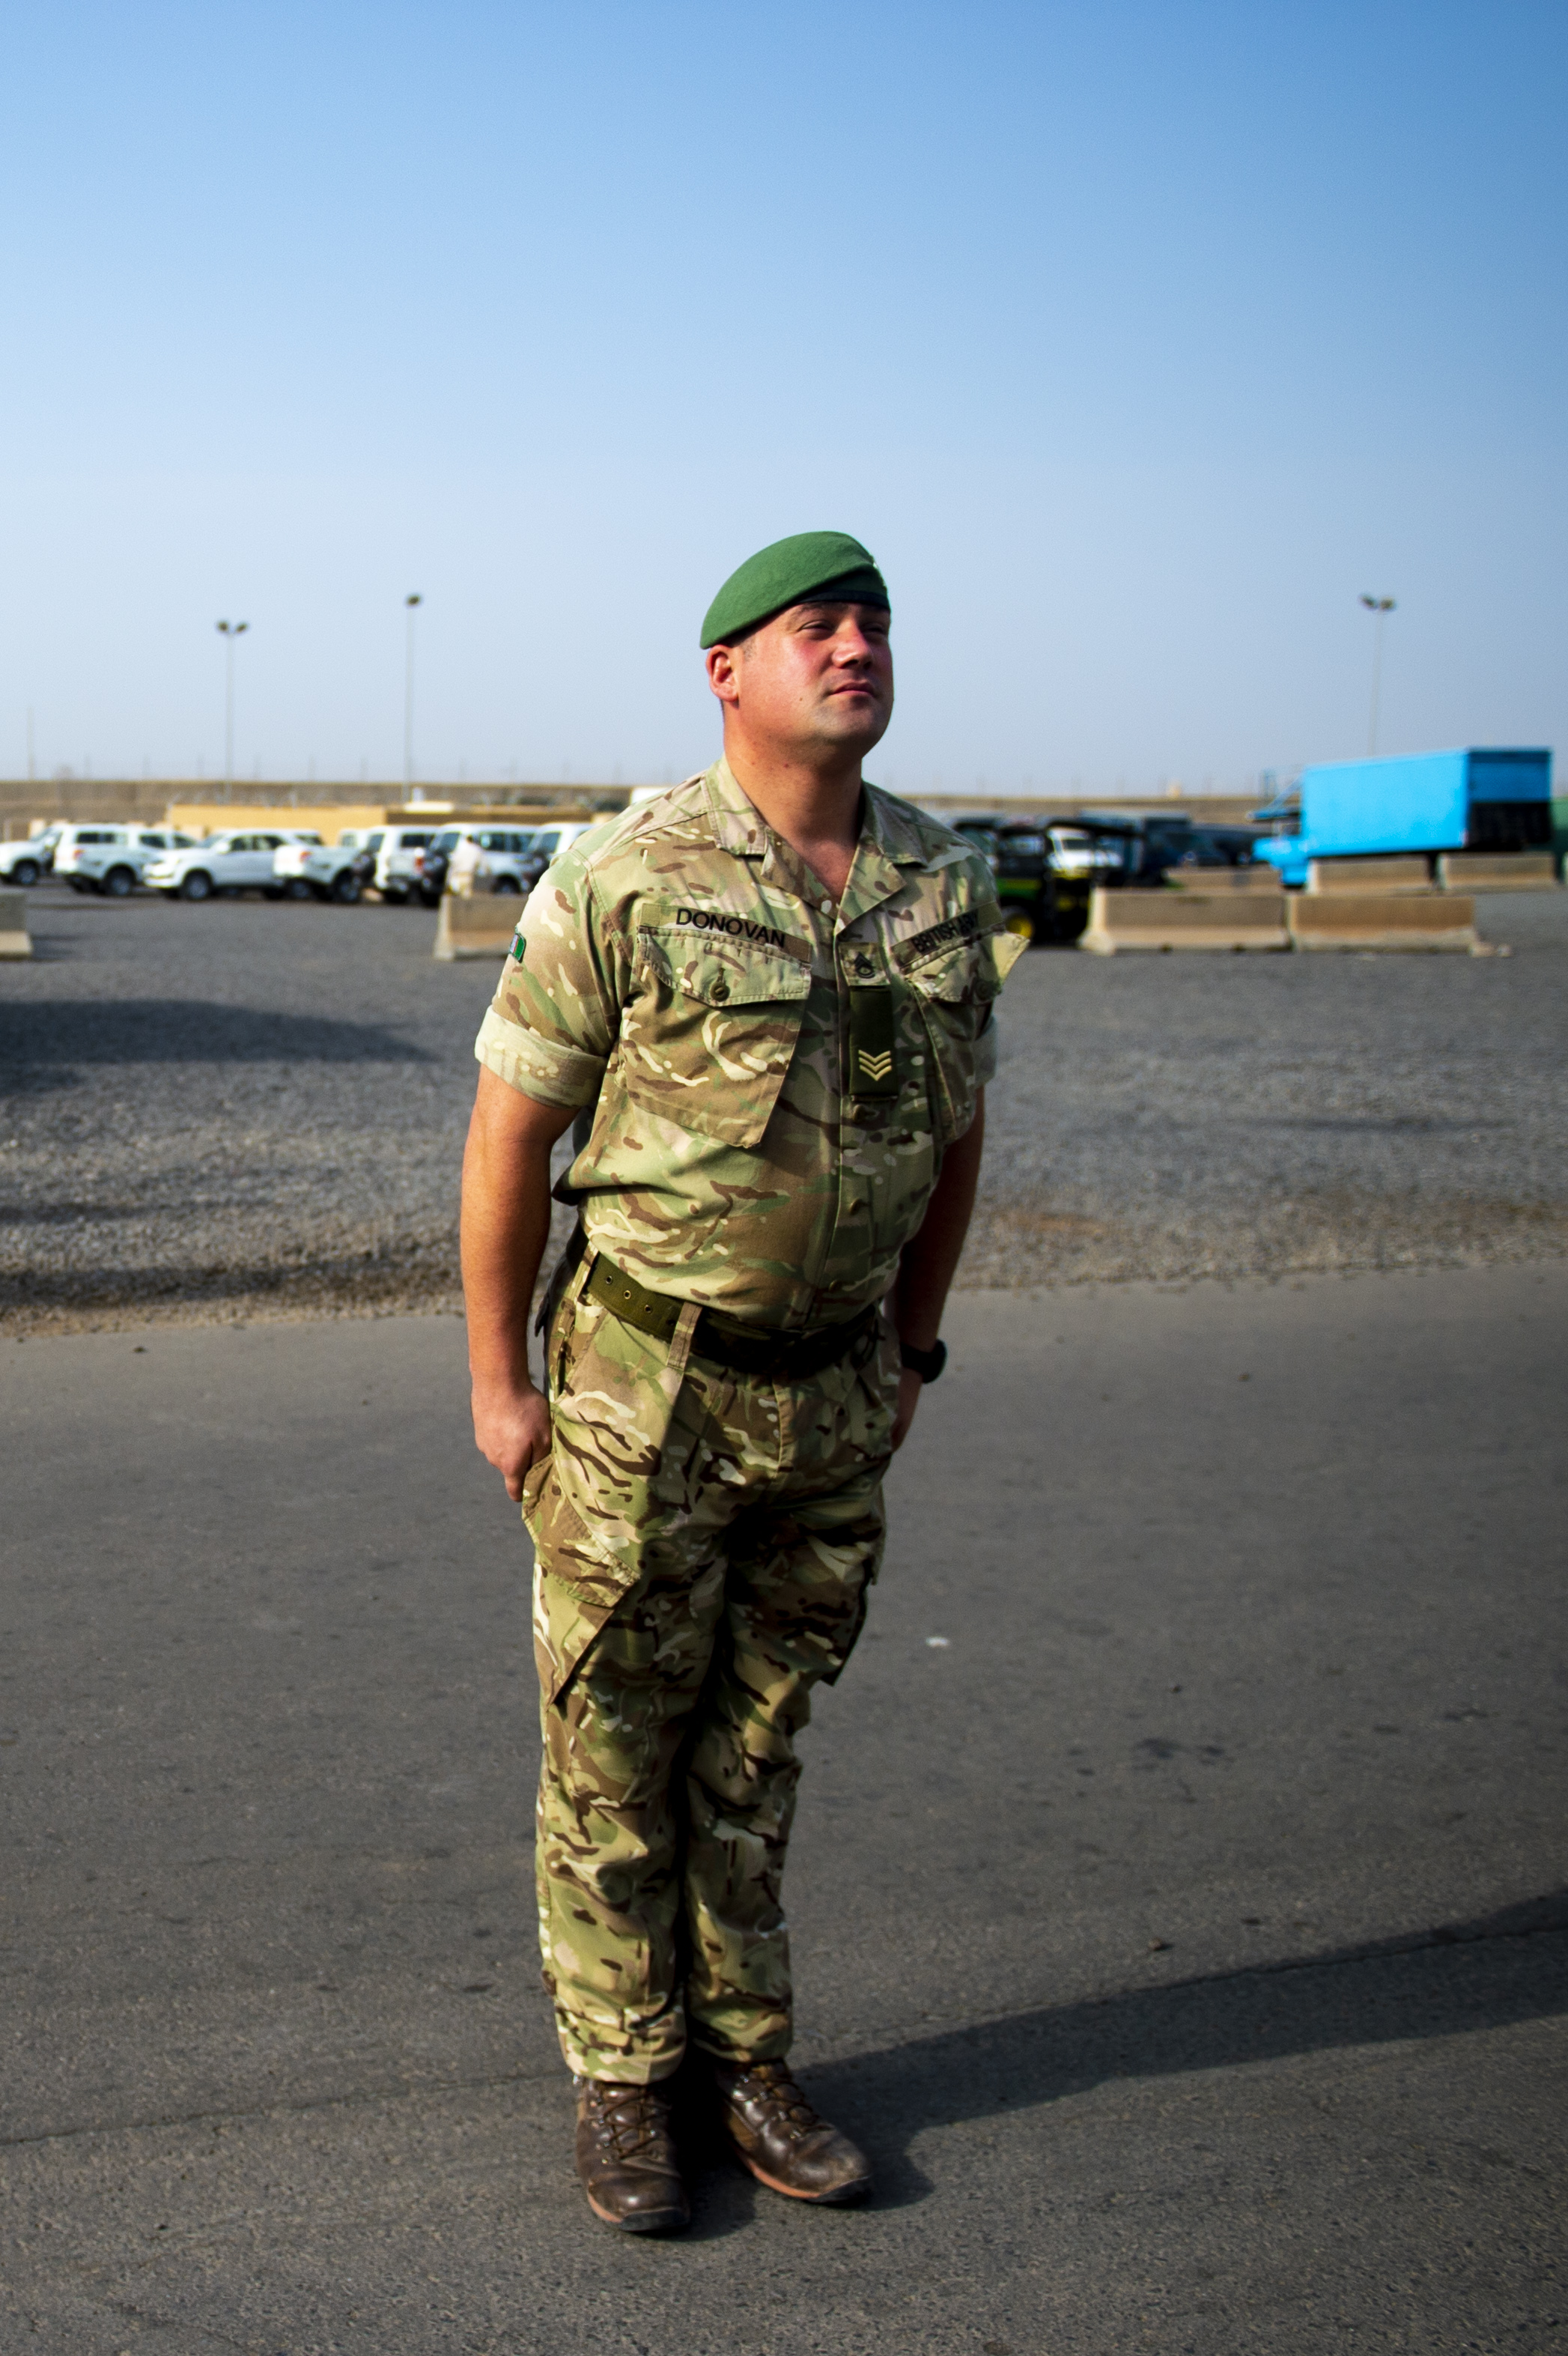 British Army Sgt. David Donovan leads a color detail for morning colors on Camp Lemonnier, Djibouti, August 25, 2018. Donovan volunteered to lead the detail to learn more about America military tradition. He is currently serving the United States as an exchange officer. (U.S. Air Force photo by Senior Airman Scott Jackson)